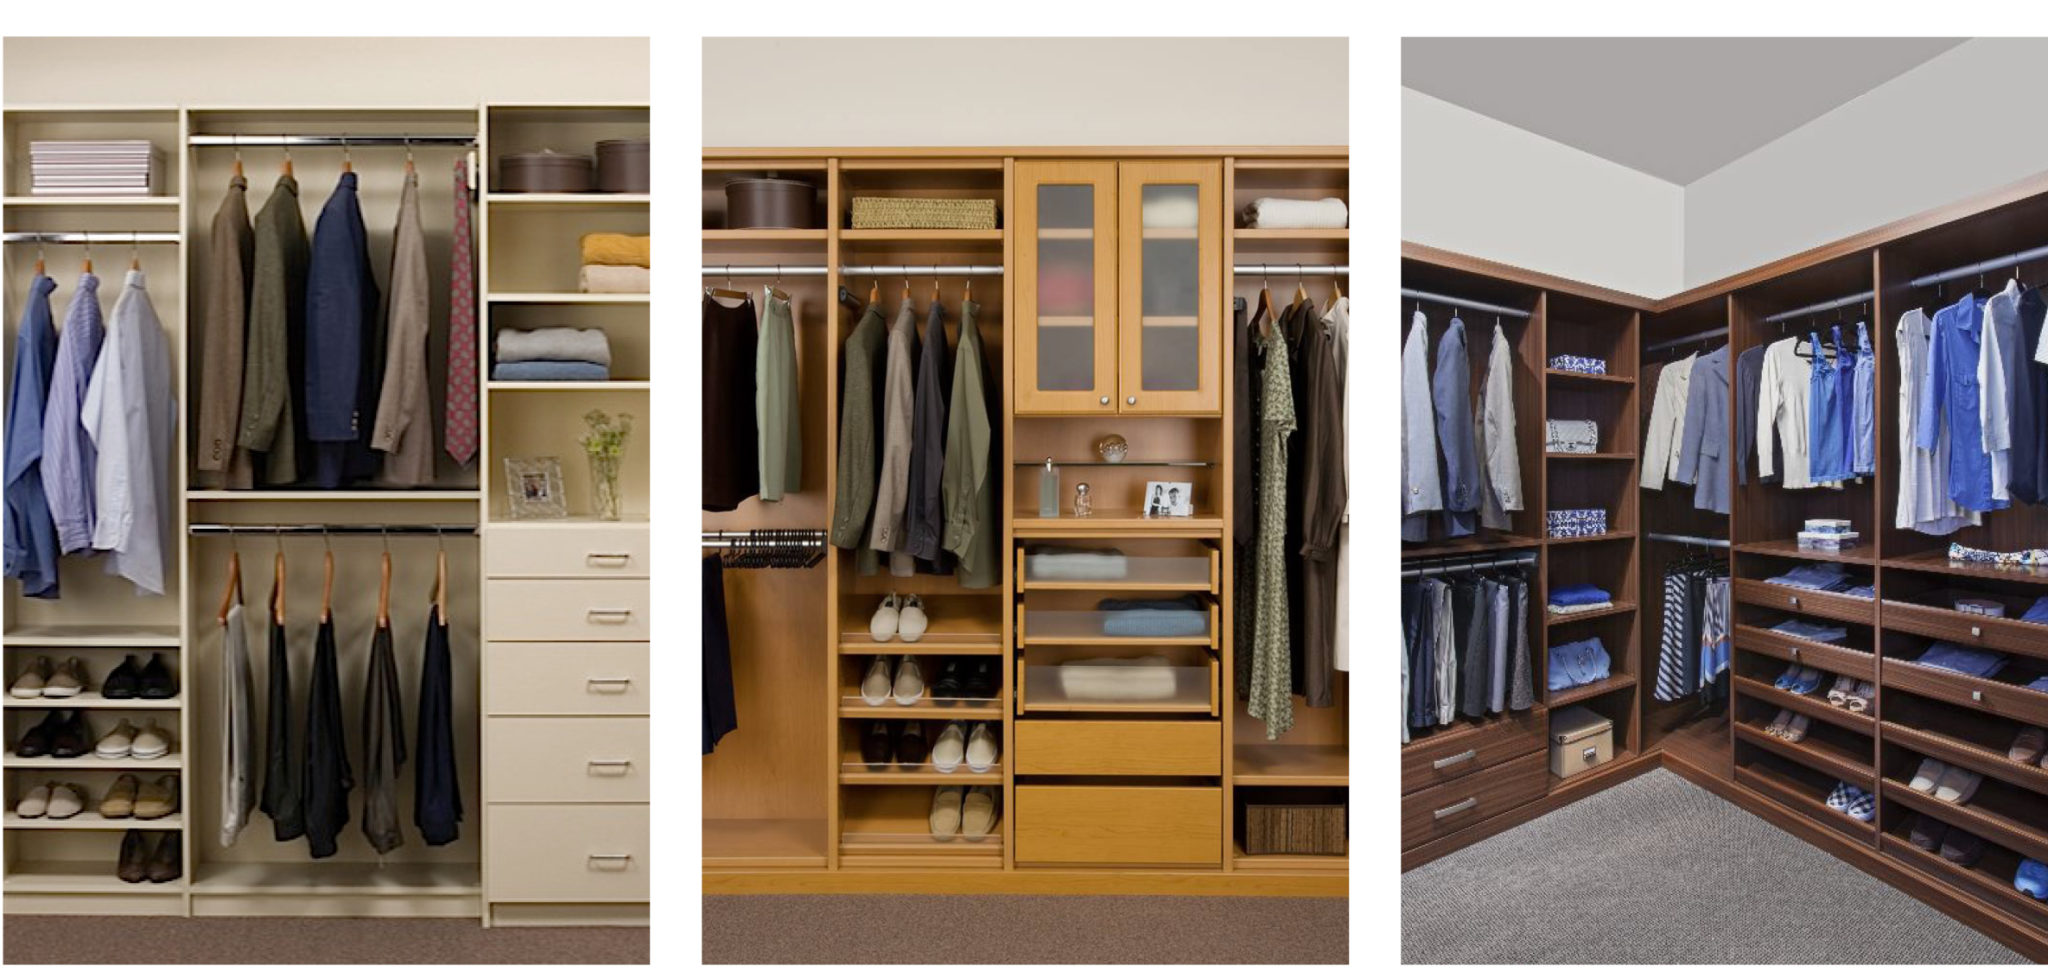 Closets By Design Can Design An Attractive Storage Space For Any Area Of  Your Home That Needs Organizing, From Custom Closets To The Garage And  Everywhere ...